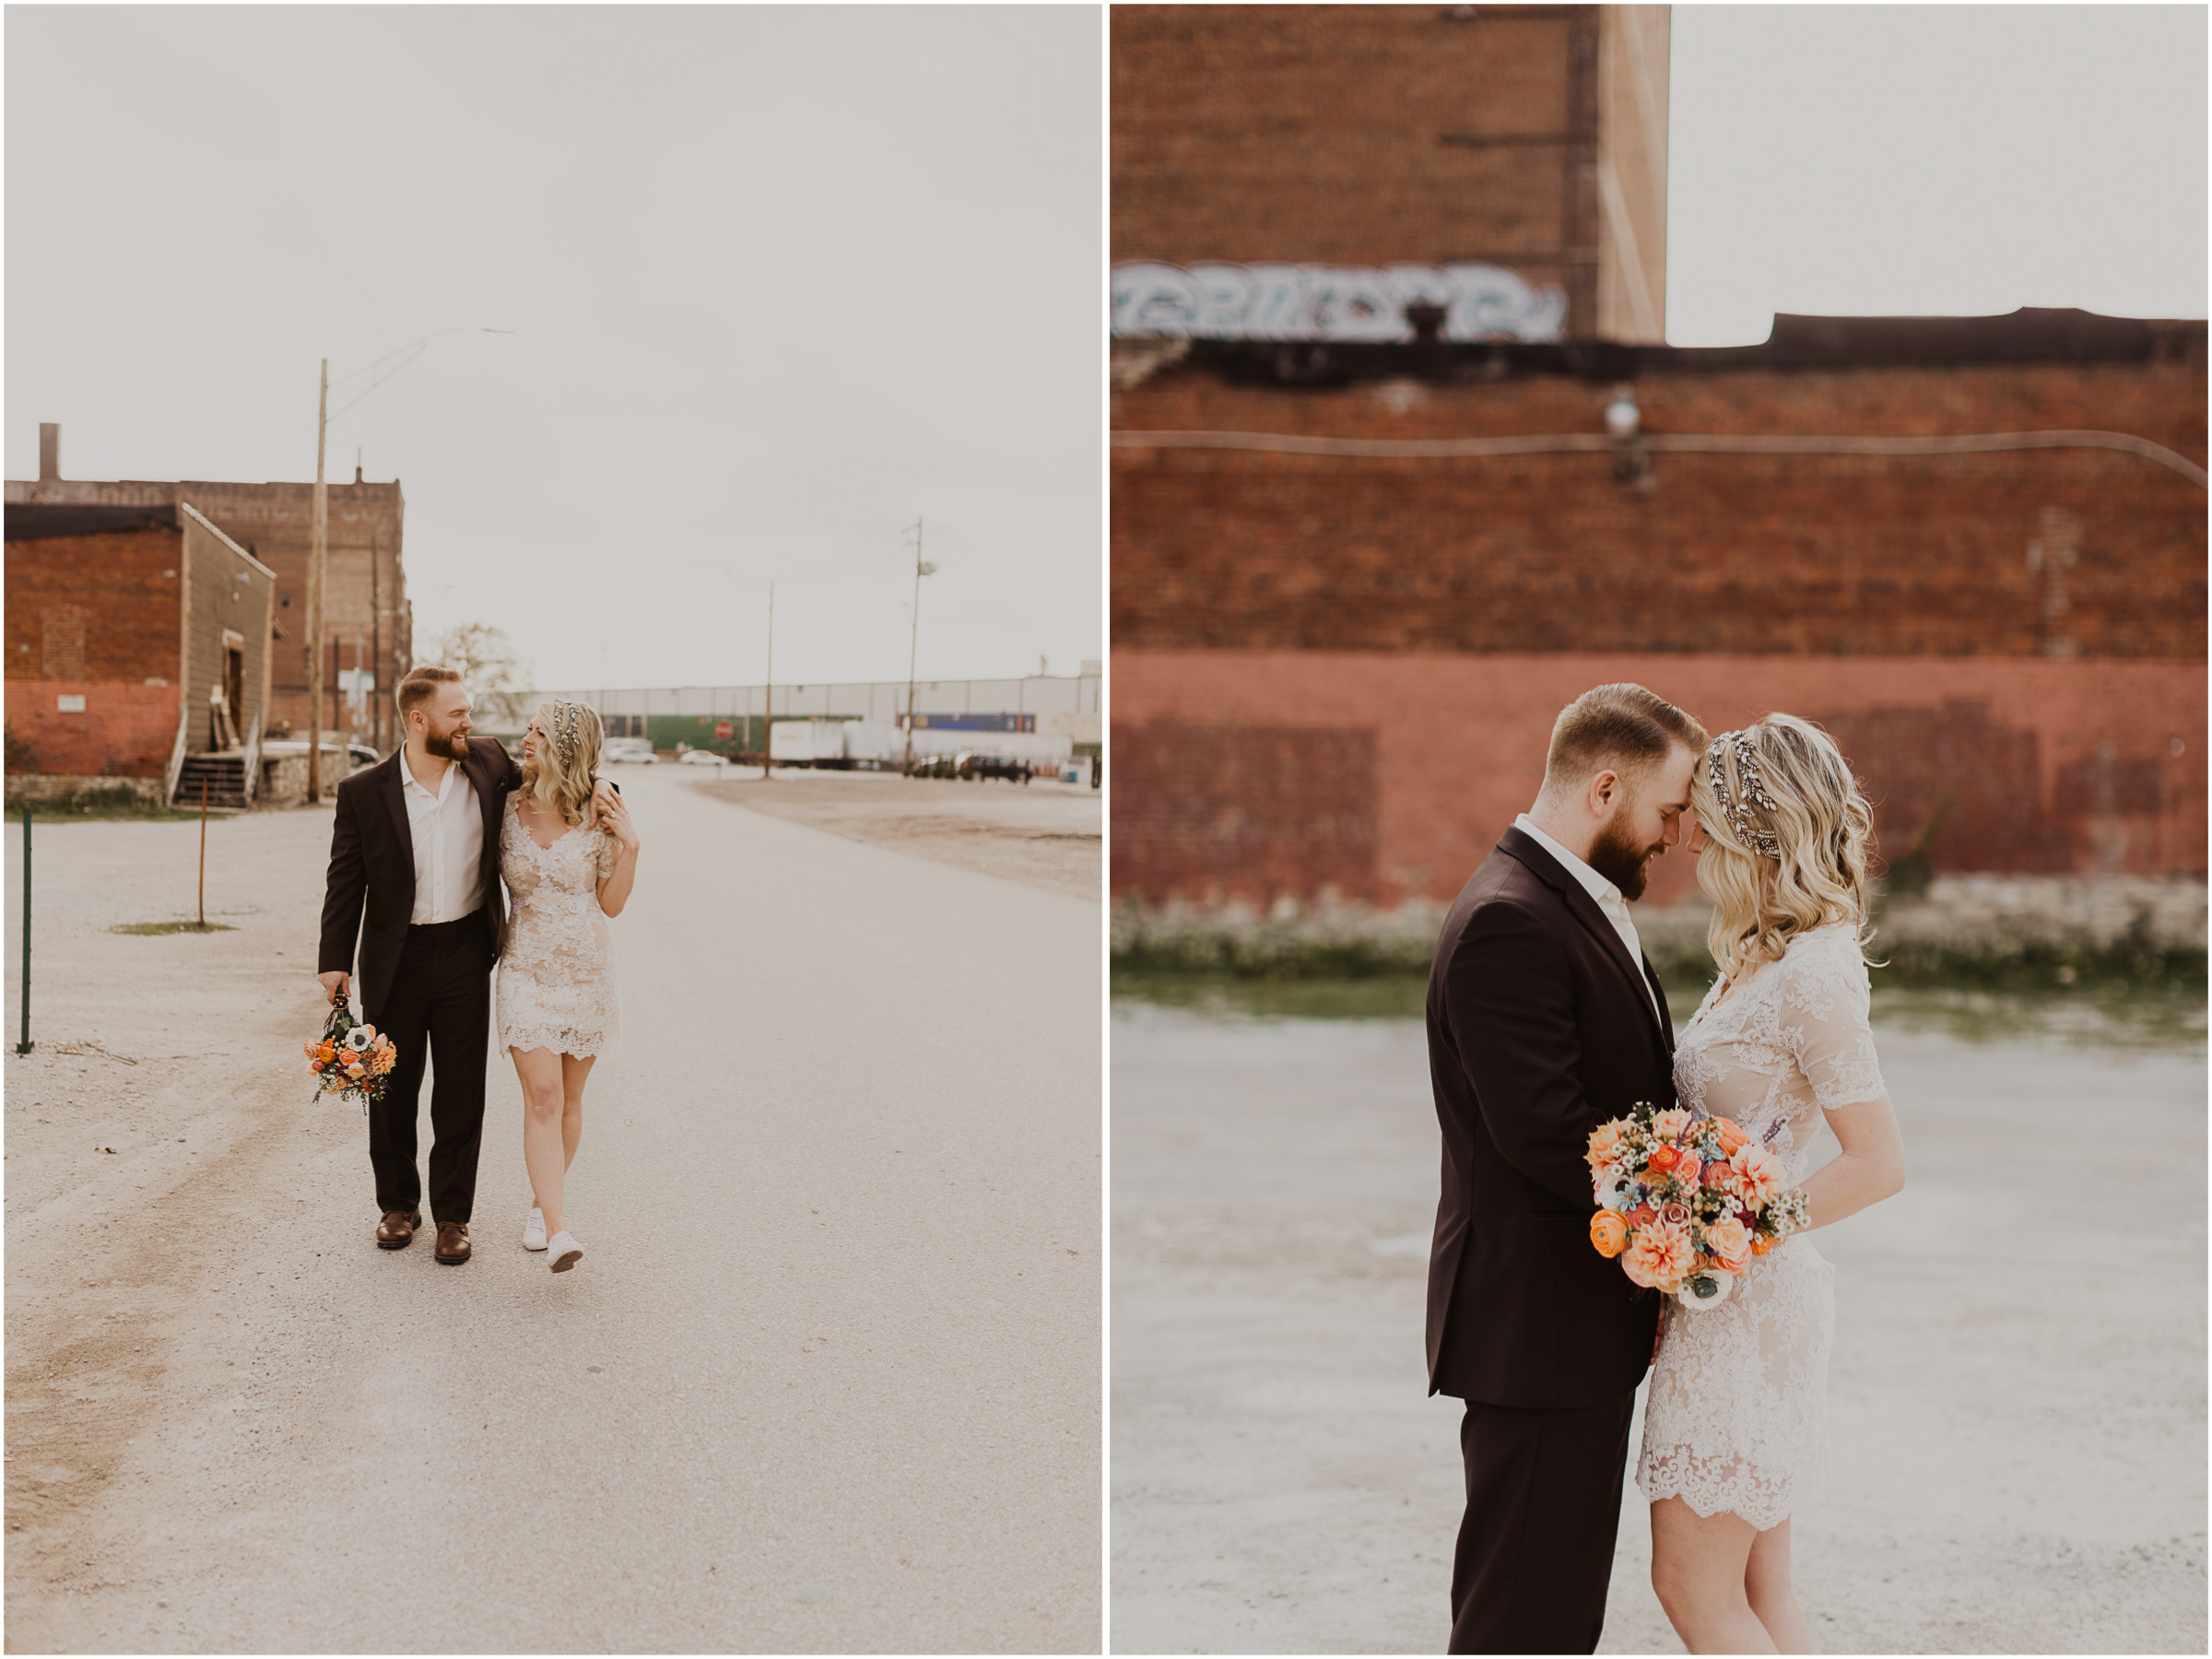 alyssa barletter photography styled shoot wedding inspiration kansas city west bottoms photographer motorcycle edgy intimate-29.jpg